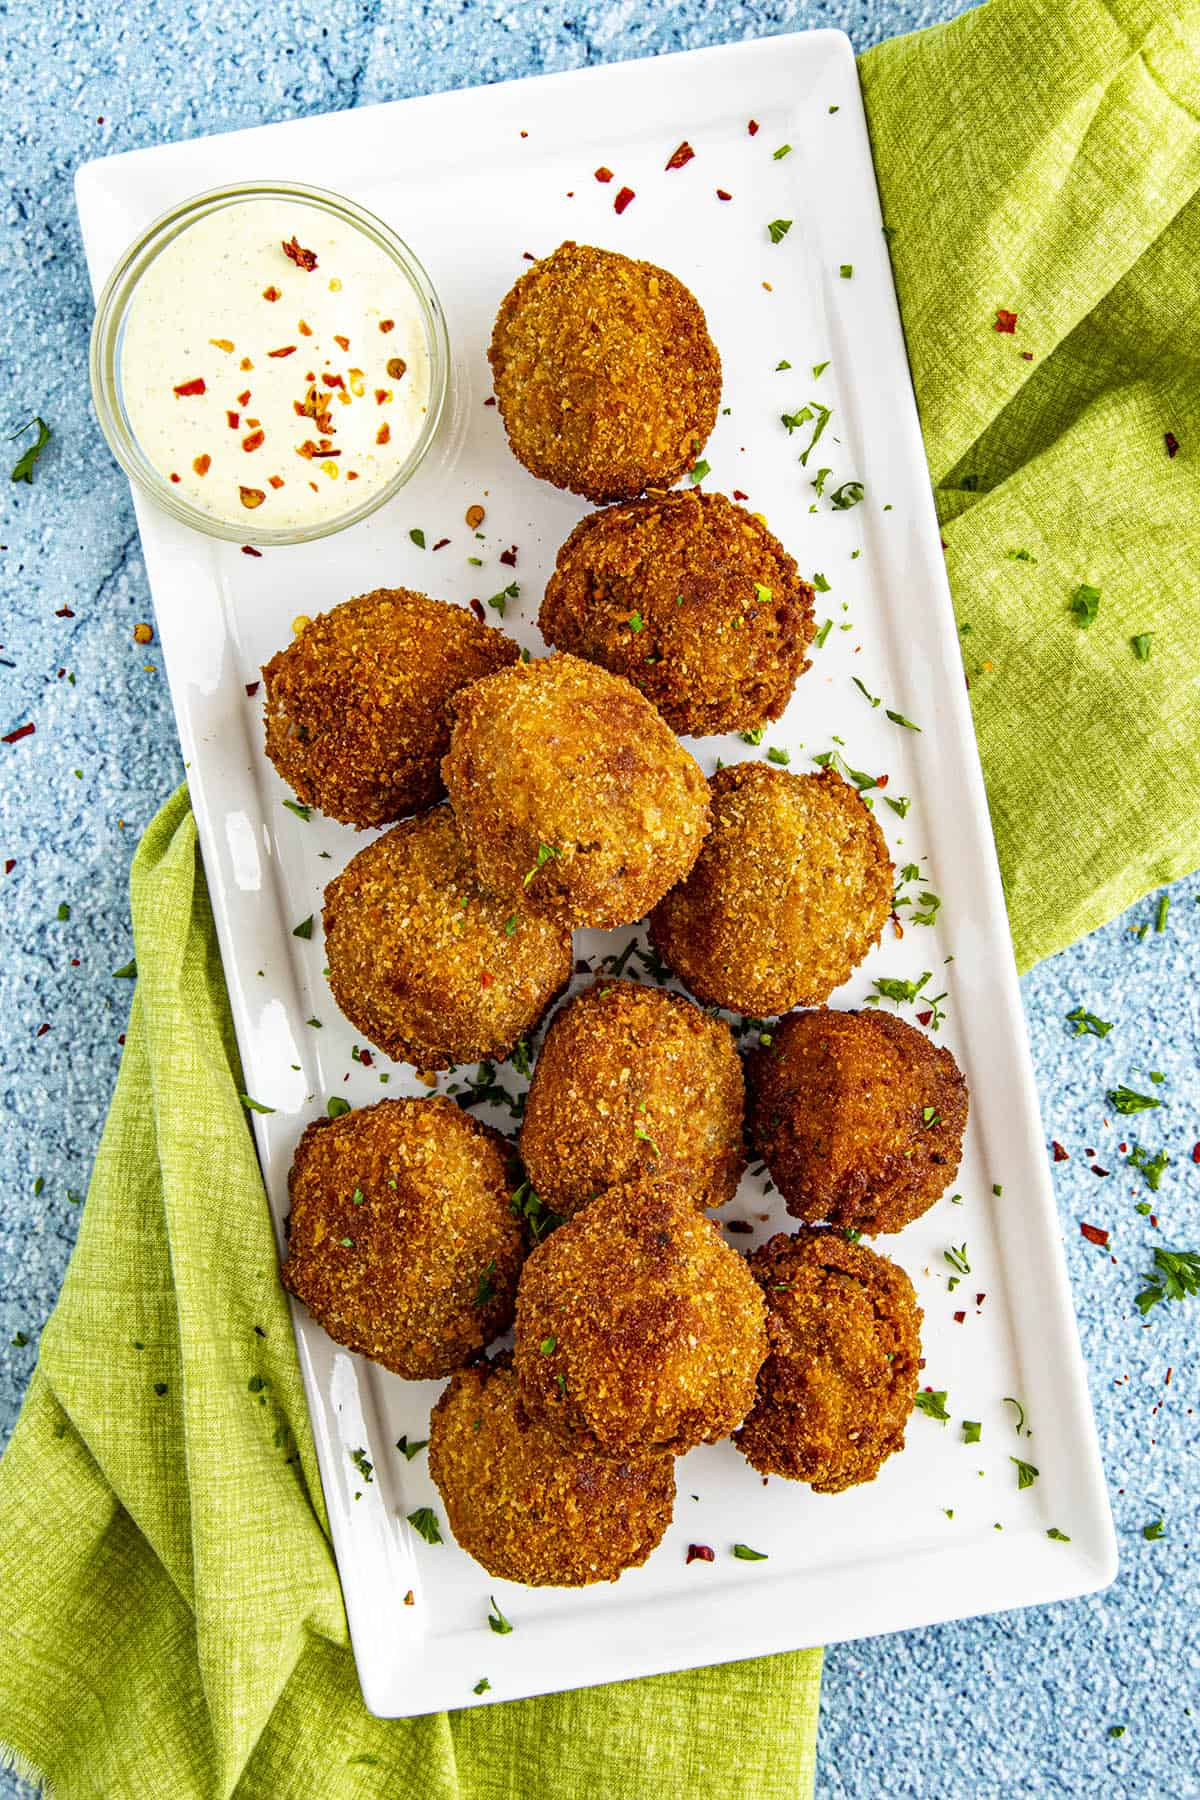 Boudin balls on a plate, ready to serve